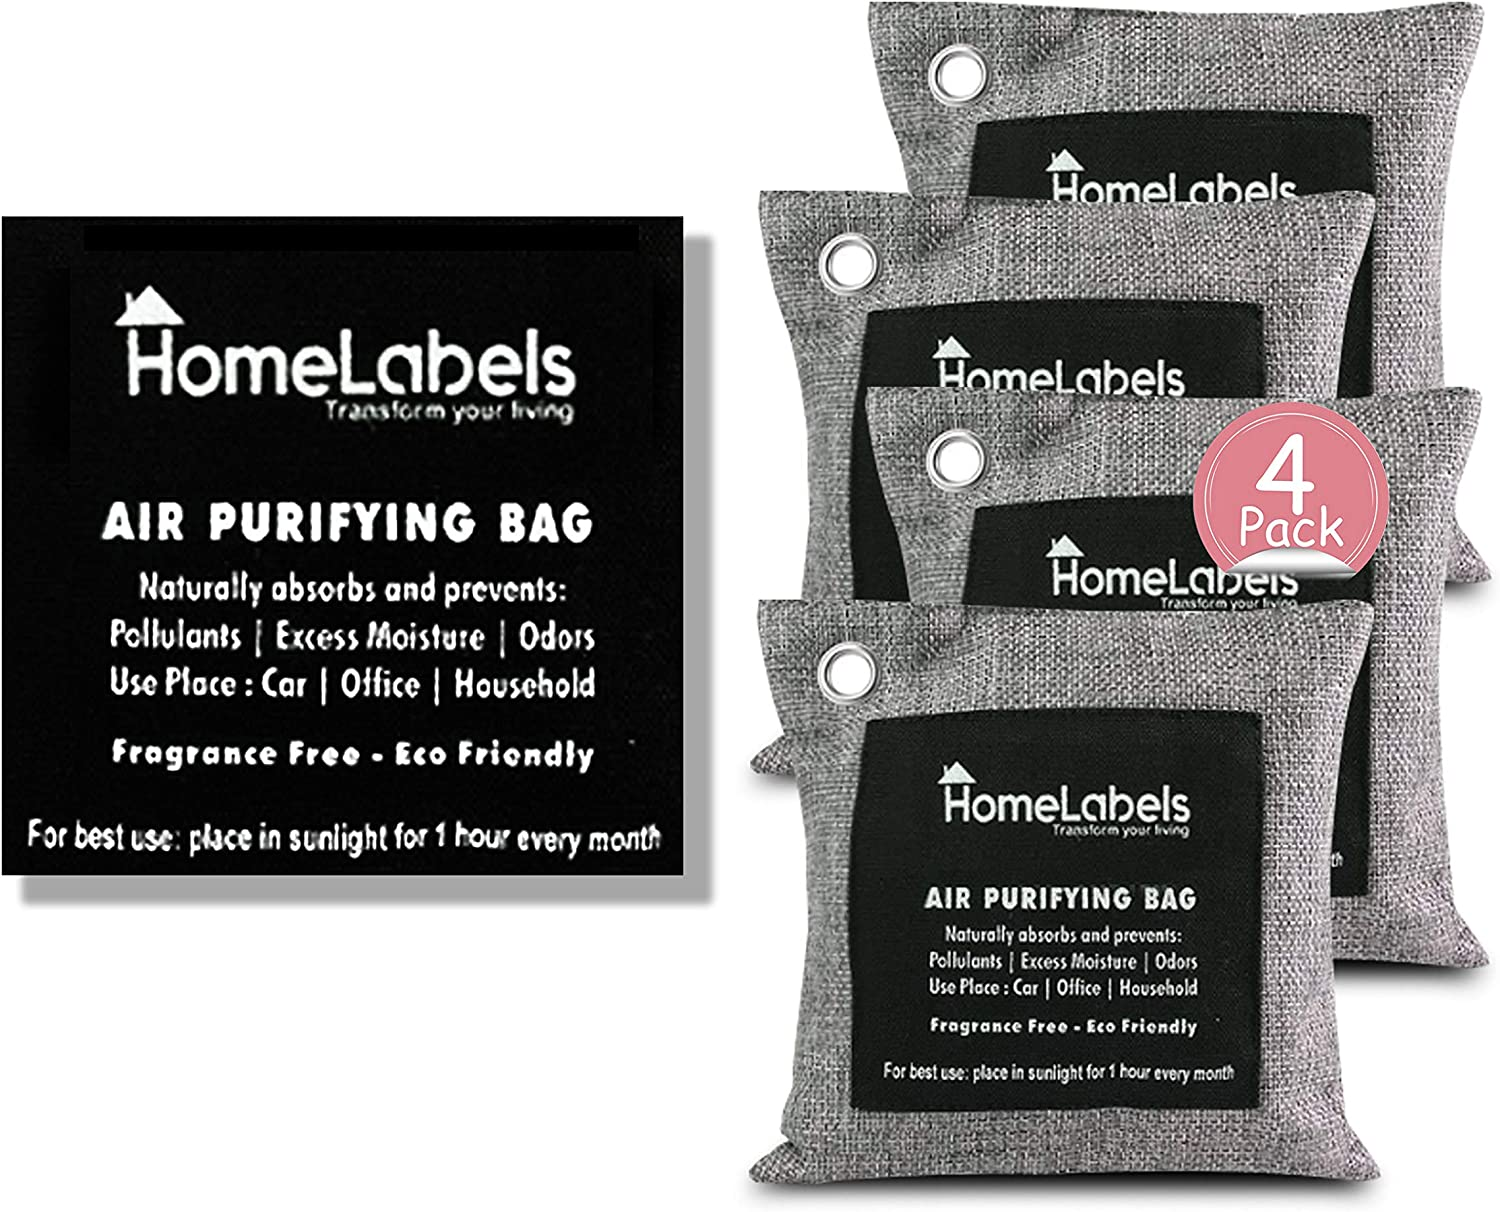 Charcoal Bags Odor Absorber- Activated Charcoal Air Purifying Bag - Charcoal Bags for Mold and Mildew -Pet odor absorber-Charcoal Bags for Home, Shoe, Car -Bamboo Charcoal Bags with Hook Rings-5x200gm